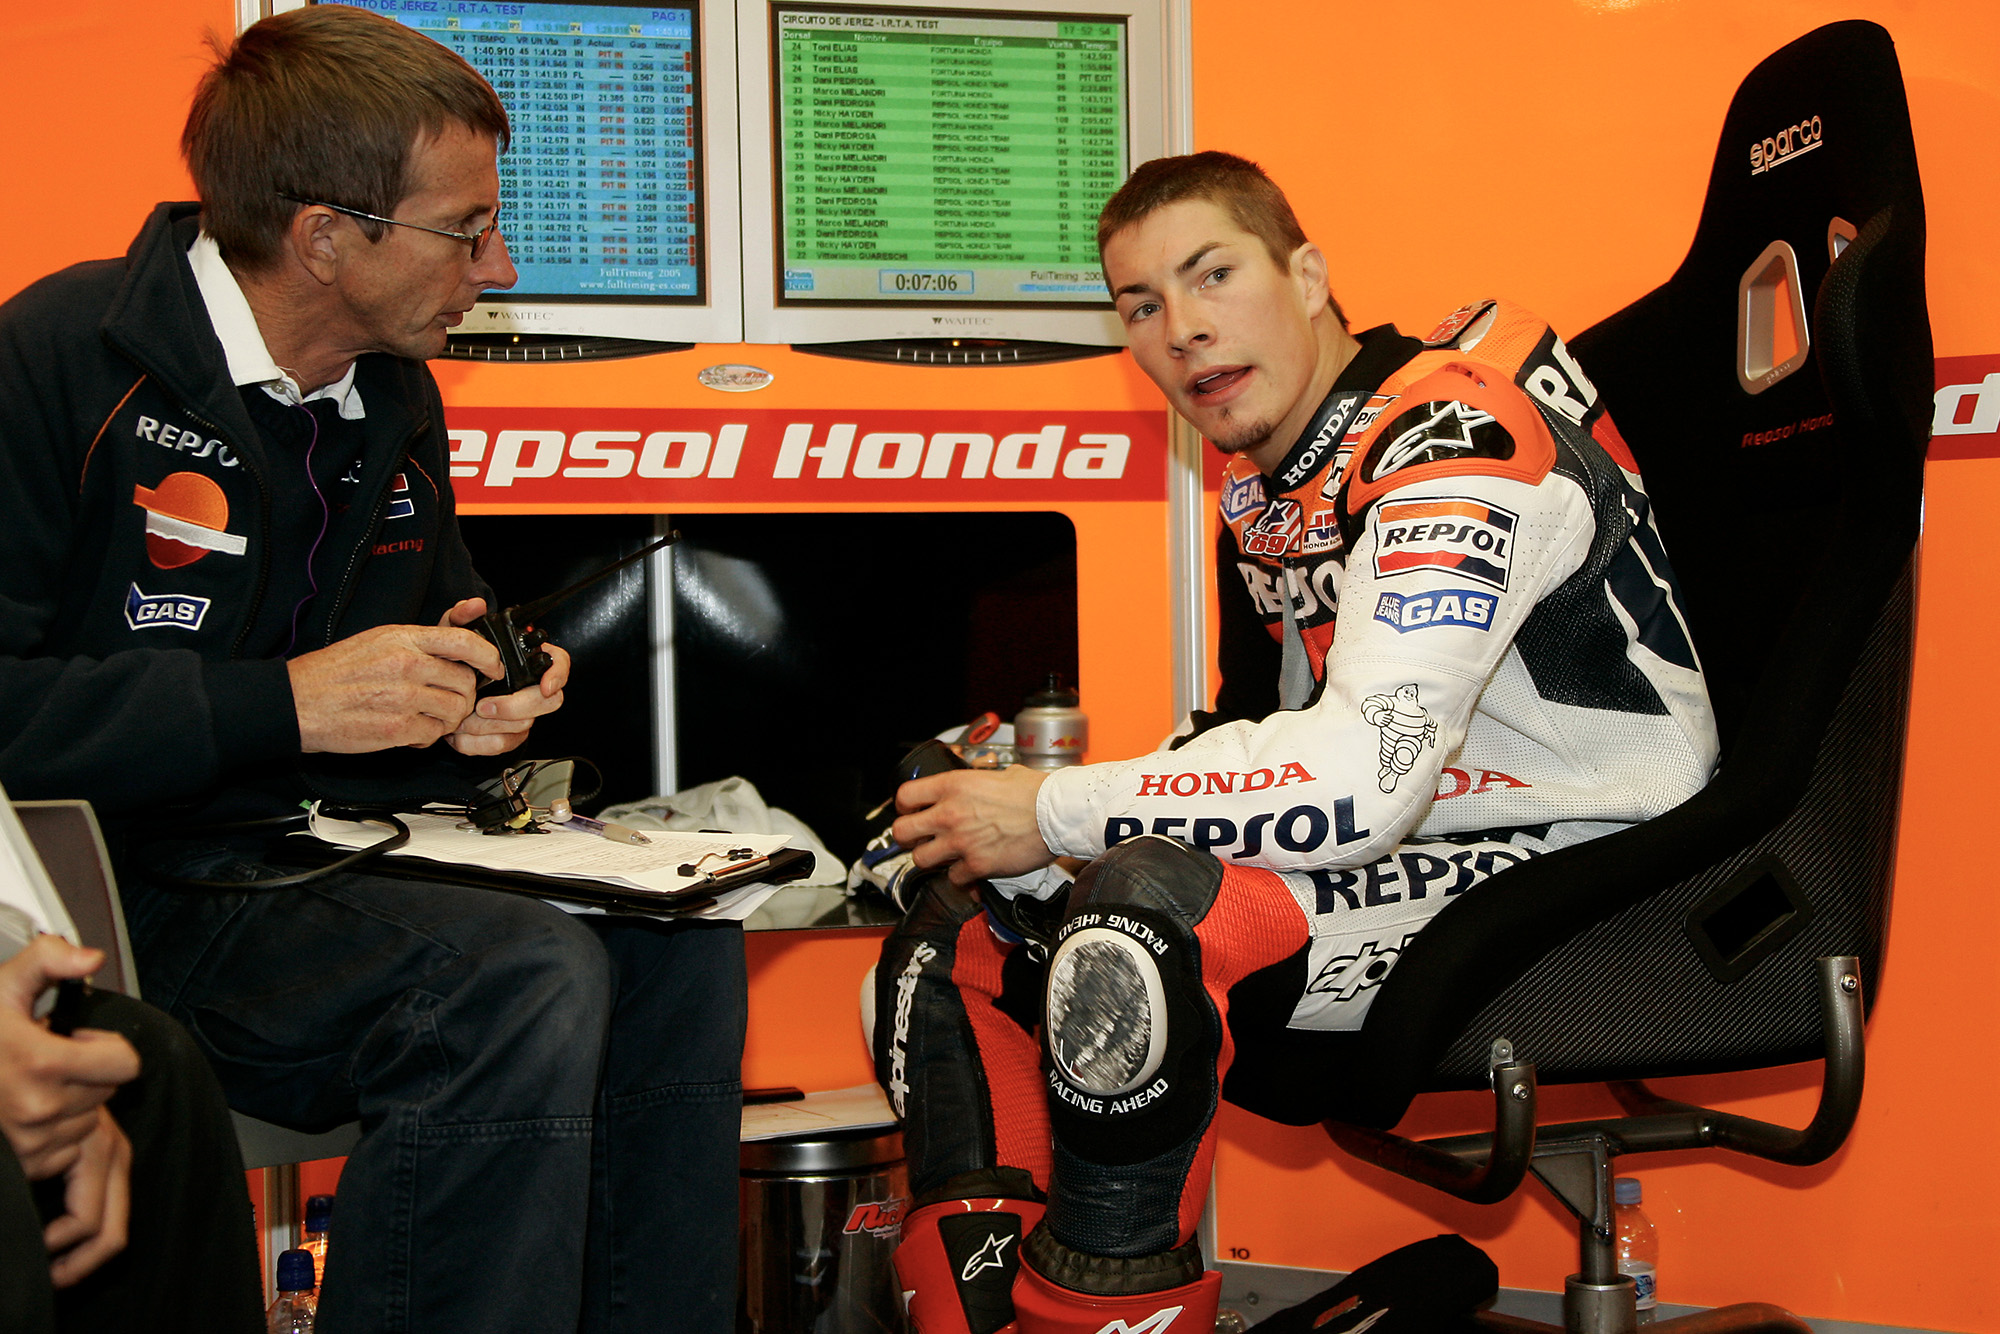 New kids in the paddock, 2003: exclusive MotoGP motorhome tour